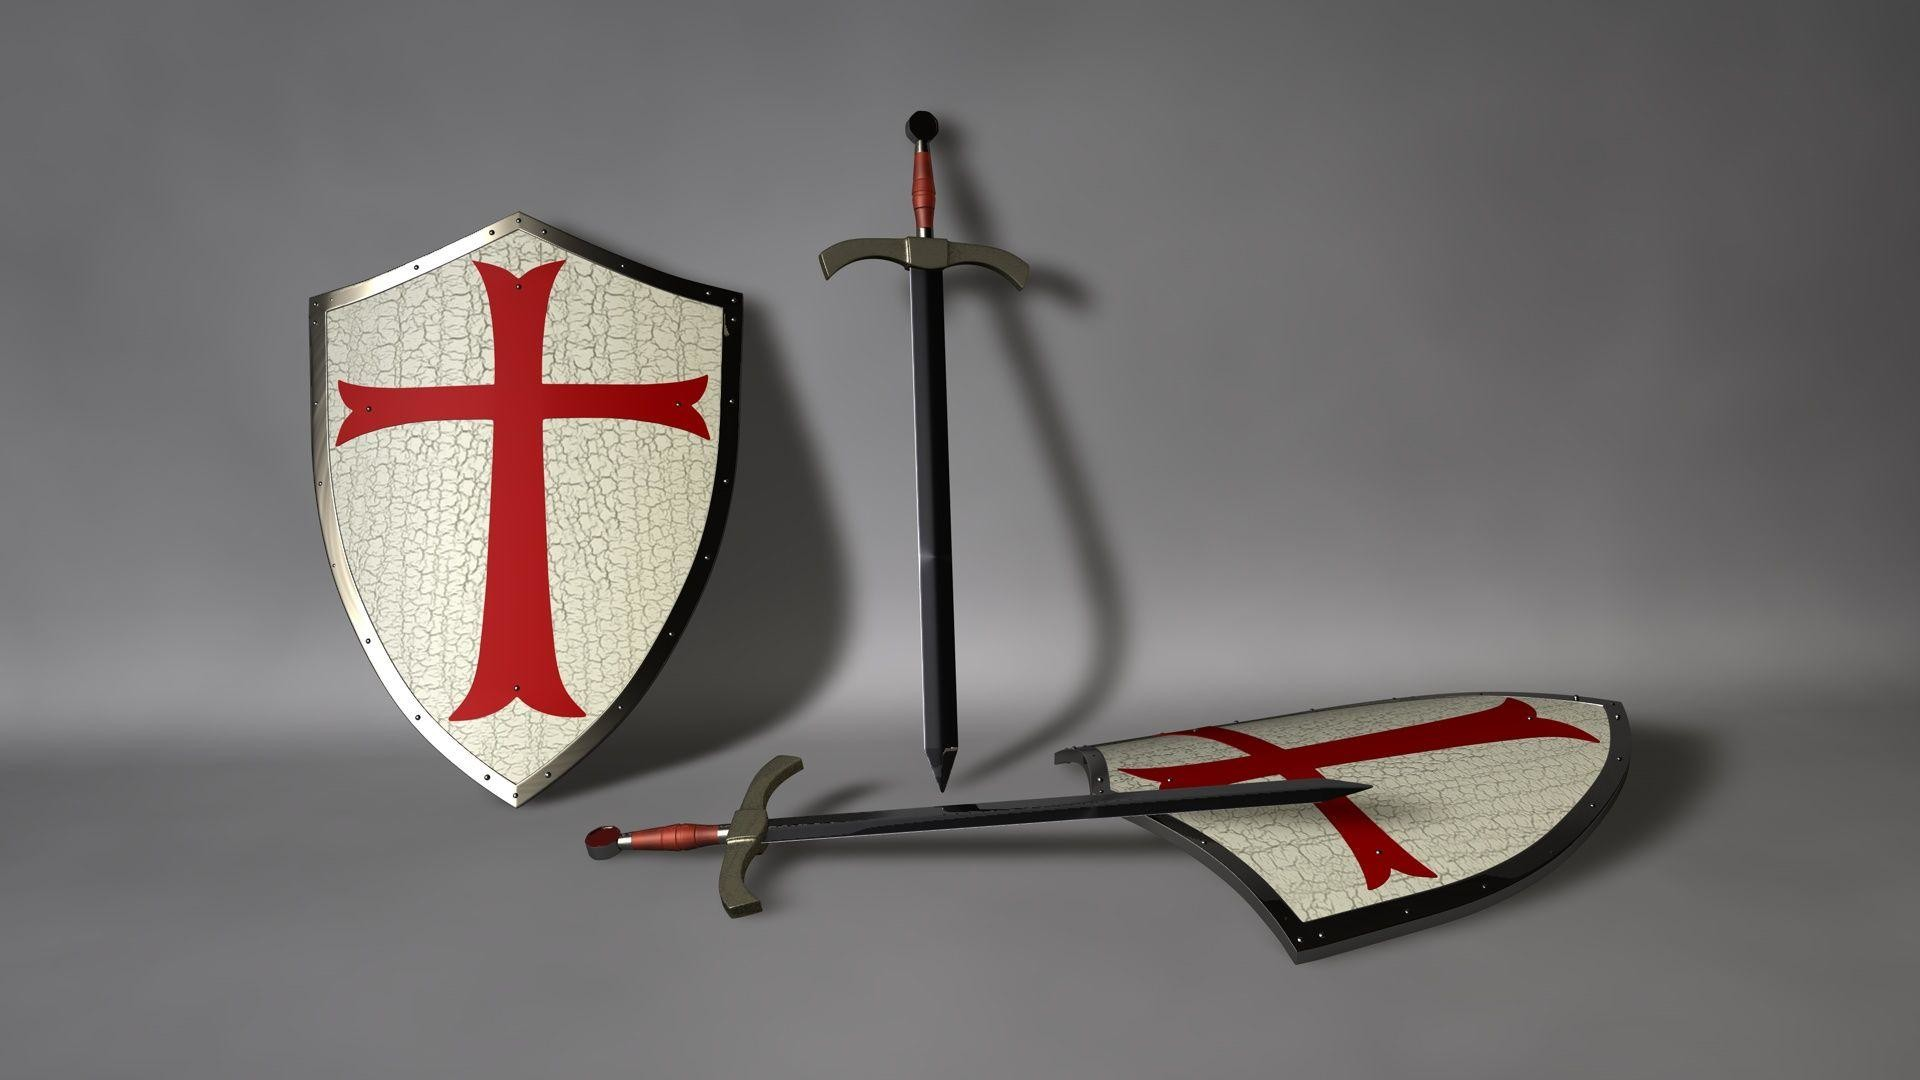 Res: 1920x1080, Images For > Knights Templar Iphone Wallpaper